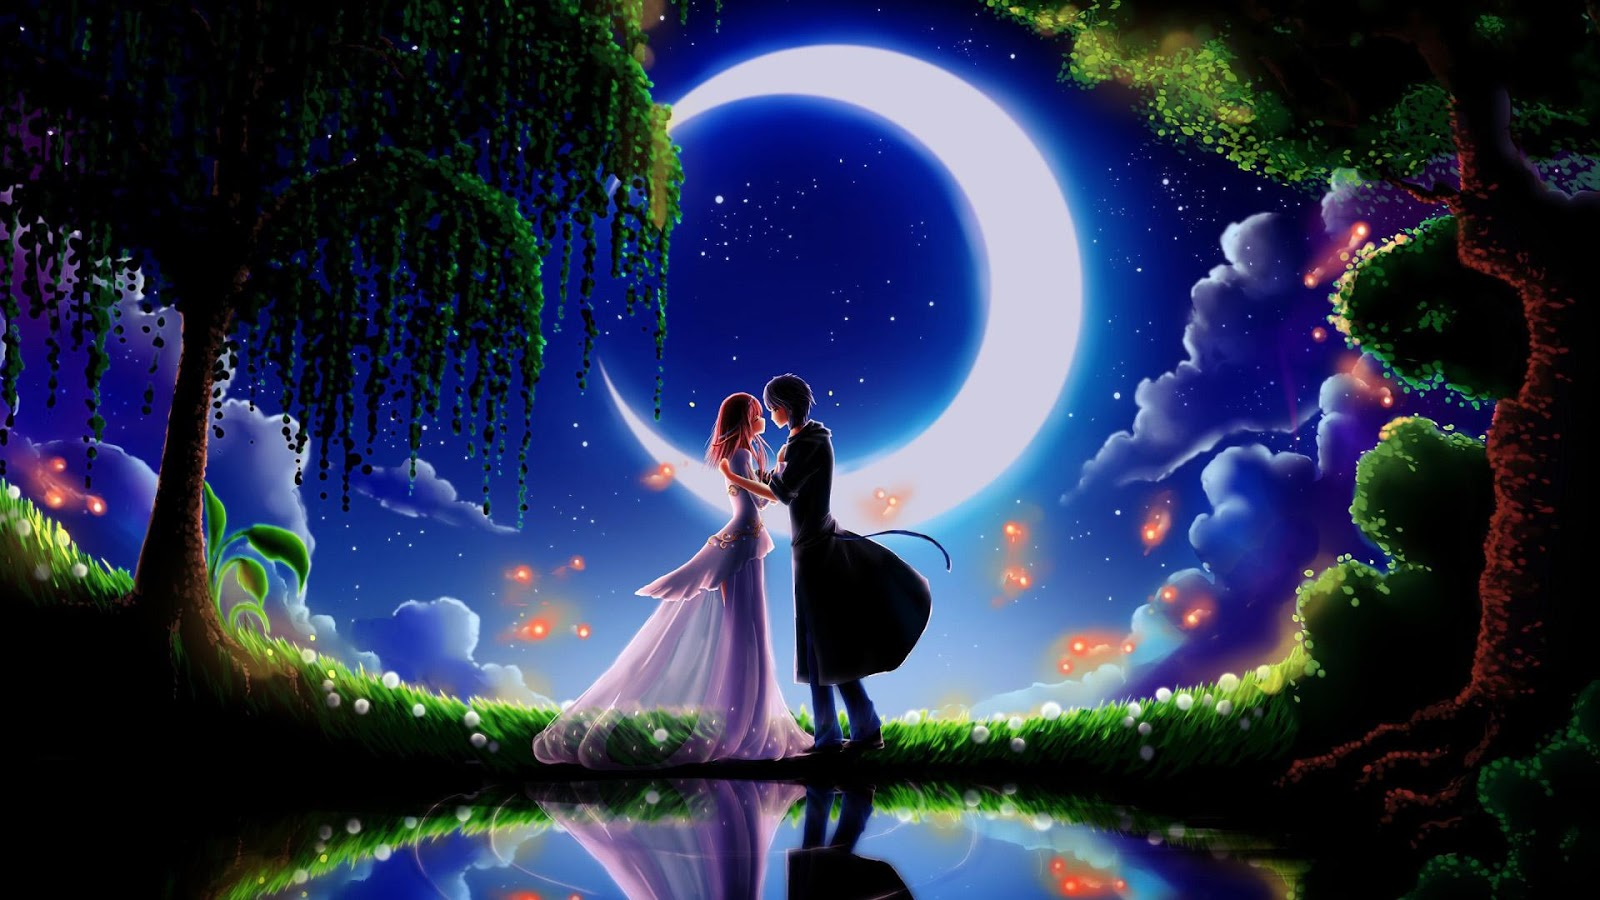 Love Couple Wallpaper Hd 1080p Free Download 53 Find: Greatest 1080p Hd Wallpaper